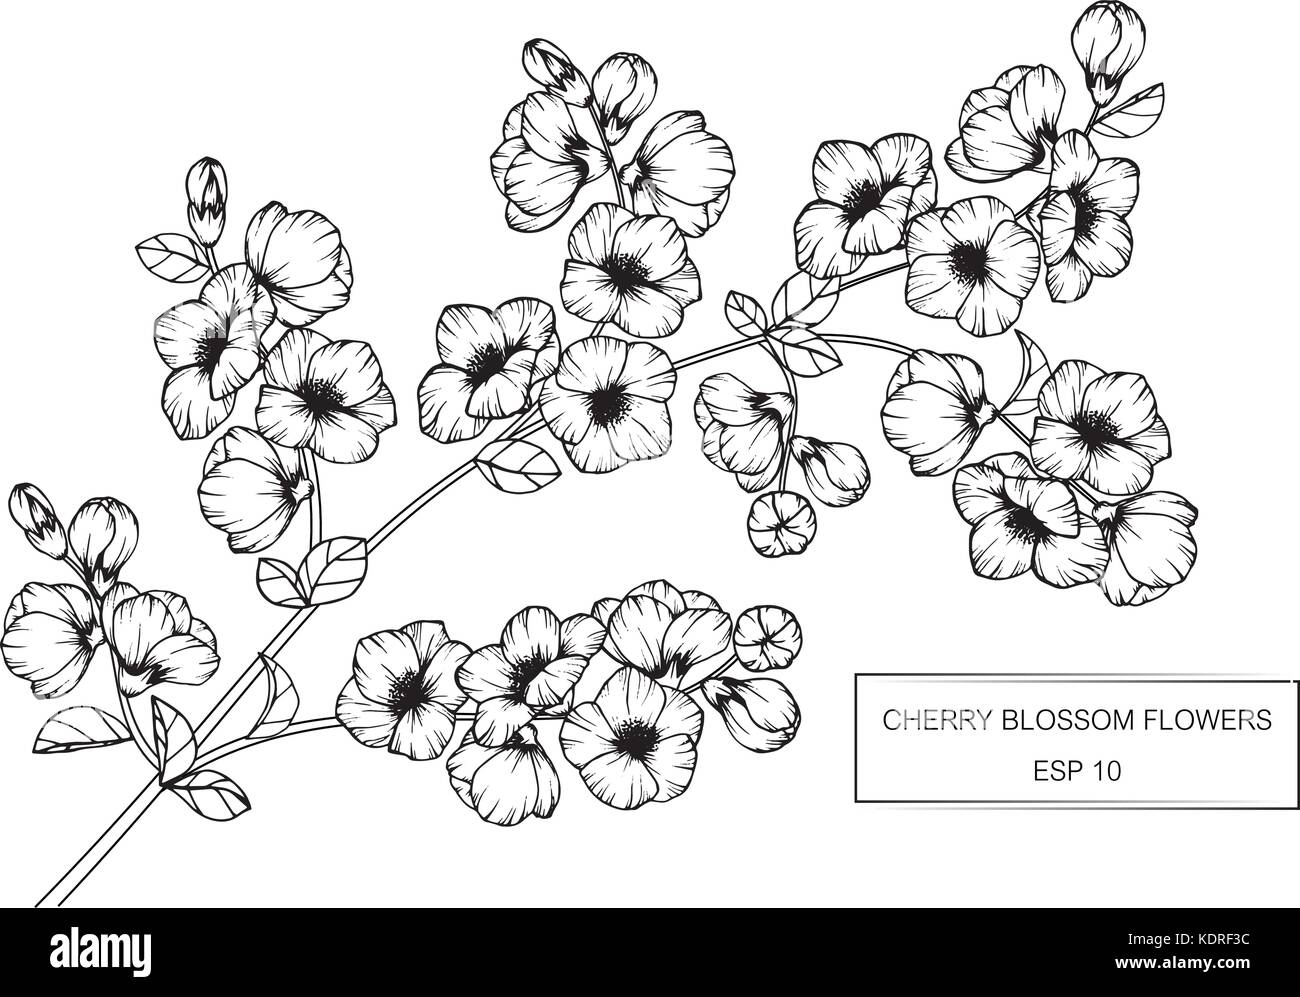 Blossom Flower Line Drawing : Cherry blossom flower drawing illustration black and